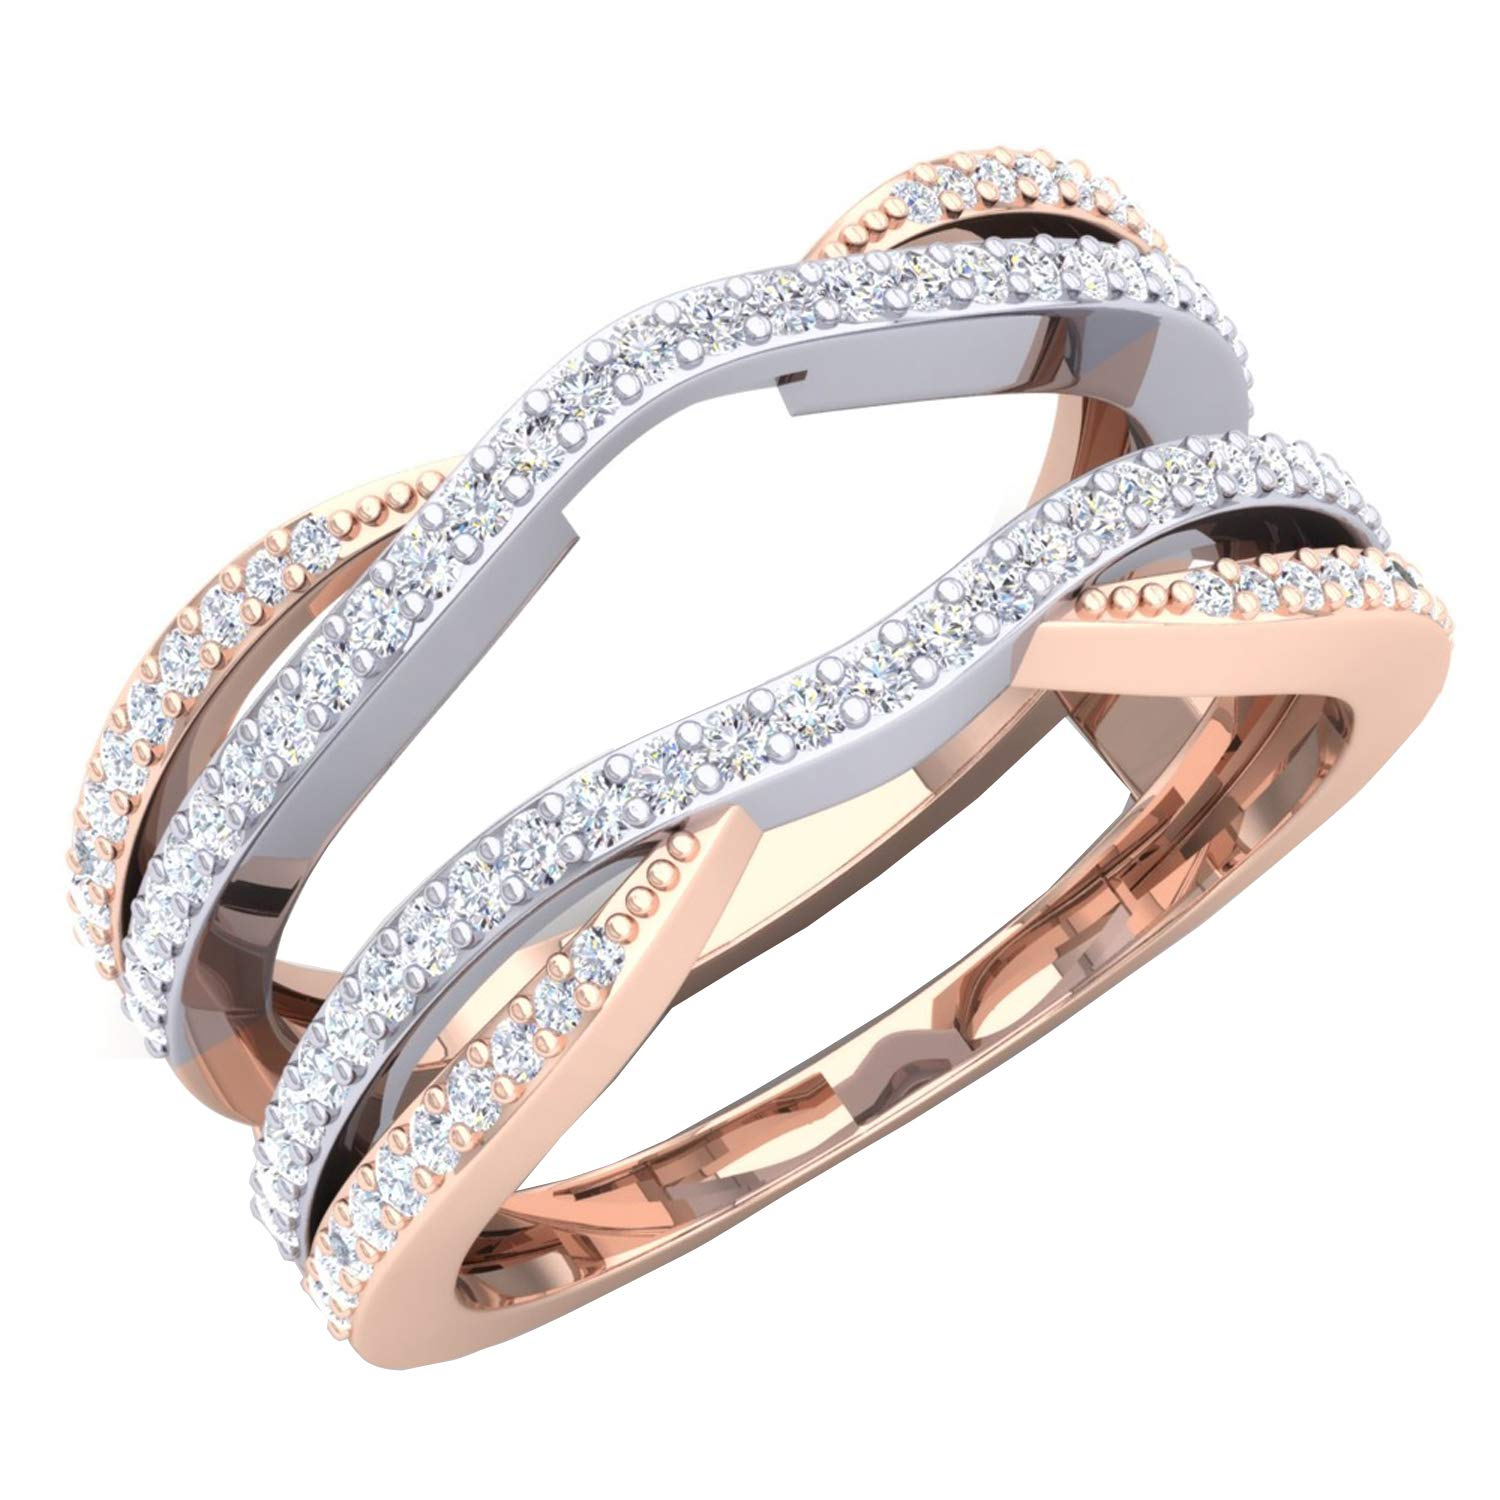 Dazzlingrock Collection 0.50 Carat (ctw) 10K White & Two Tone Diamond Wedding Band Guard Double Ring 1/2 CT, Rose Gold, Size 7.5